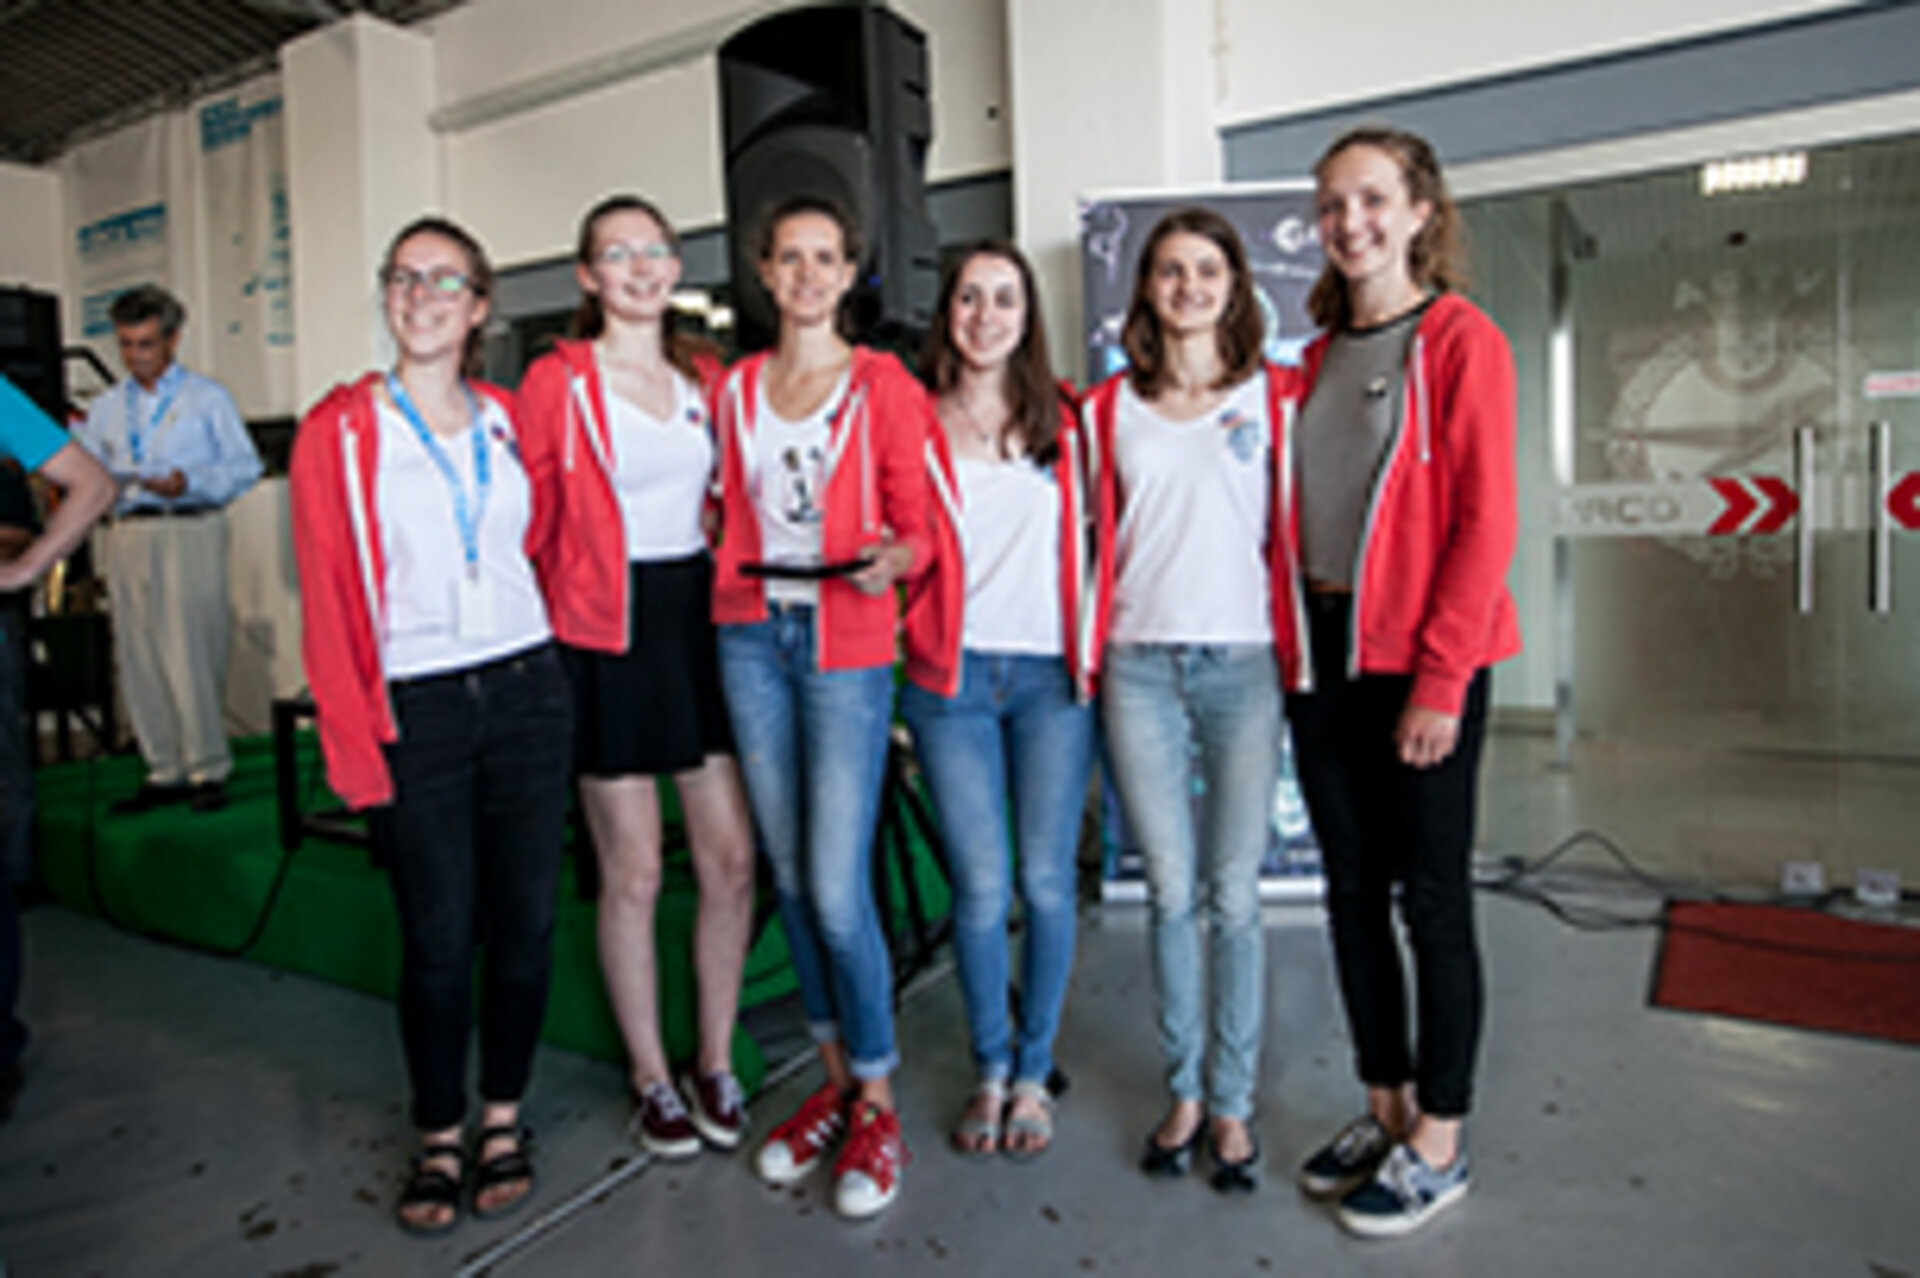 The URSinvestigators team came in second in the 2016 CanSat competition initiated by the ESA education office